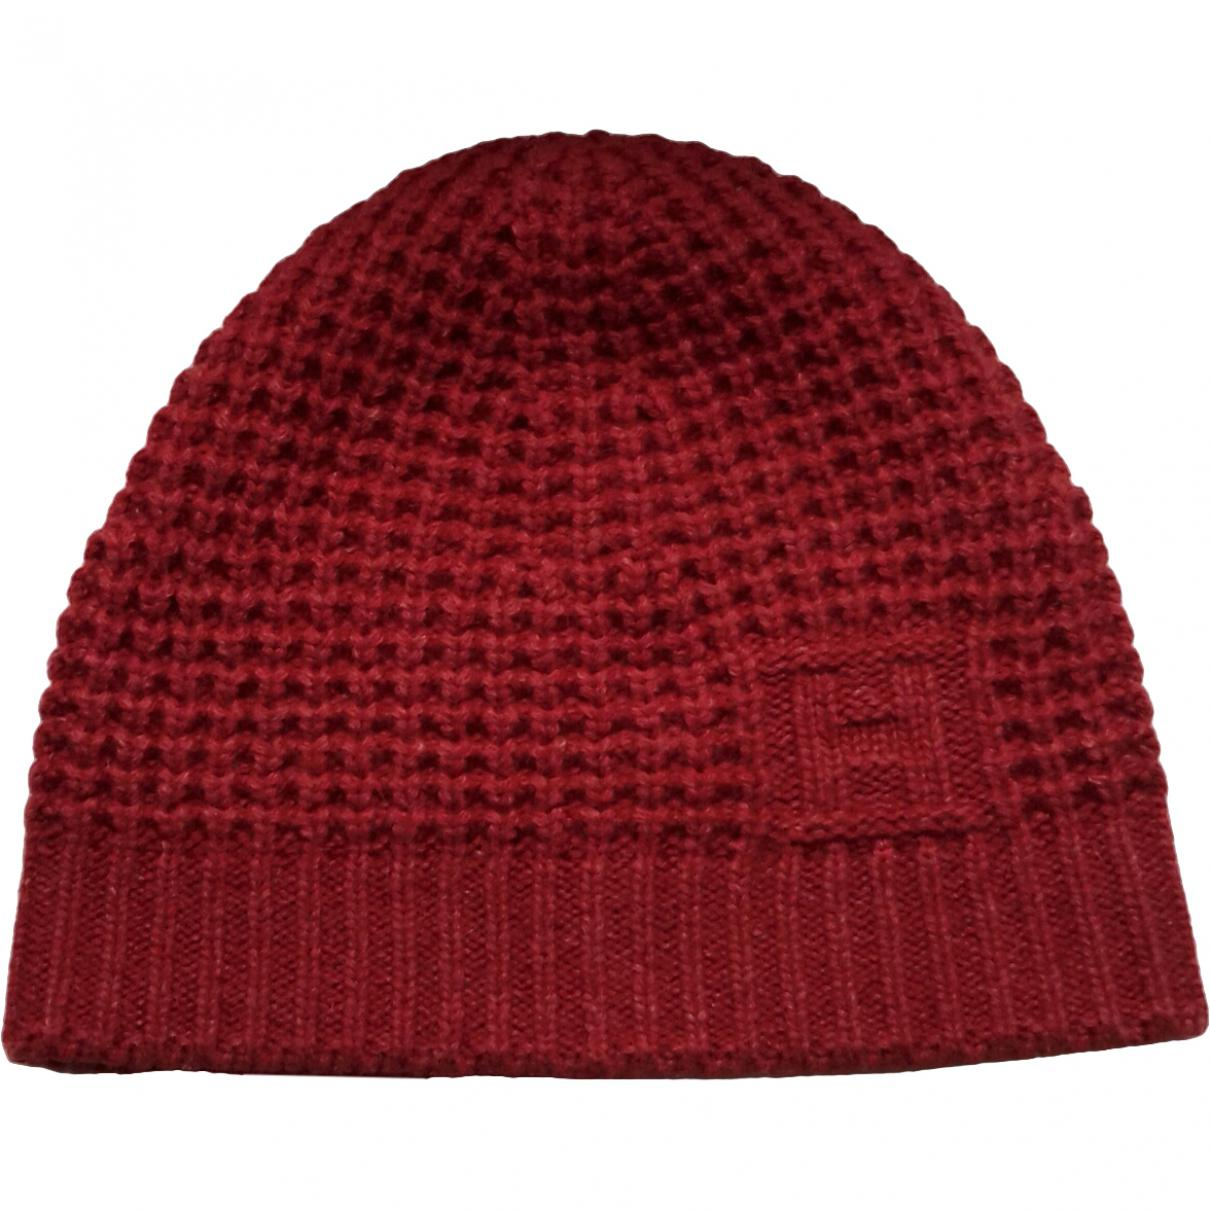 72491dce Gallery. Previously sold at: Vestiaire Collective · Men's Beanies